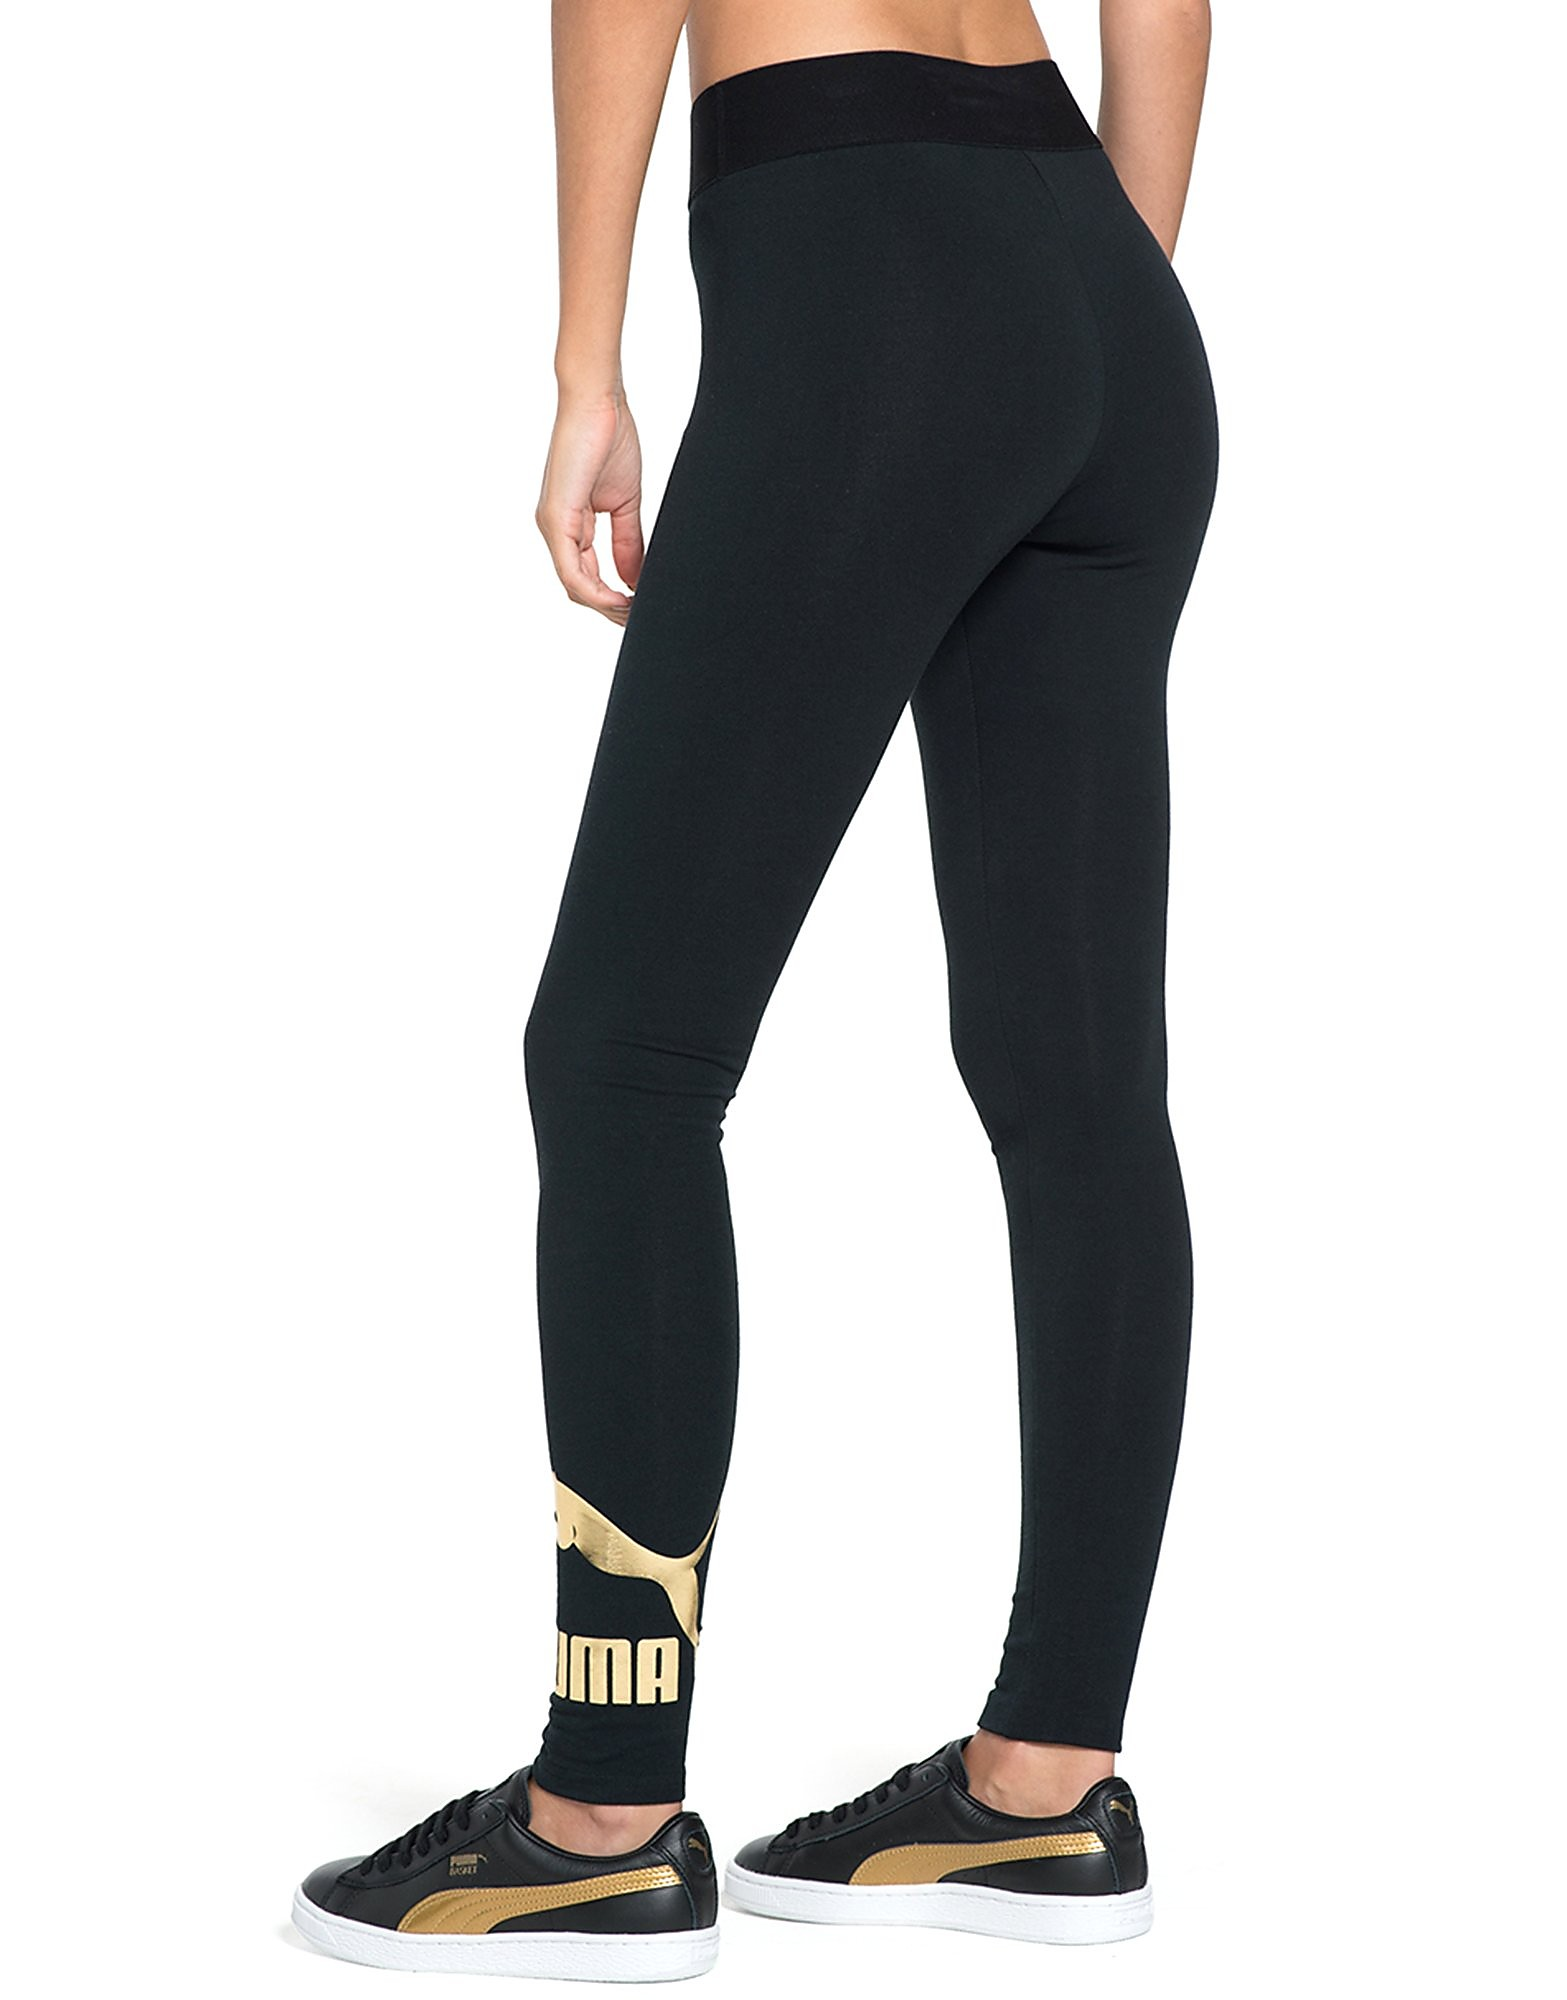 PUMA Gold Pack Leggings